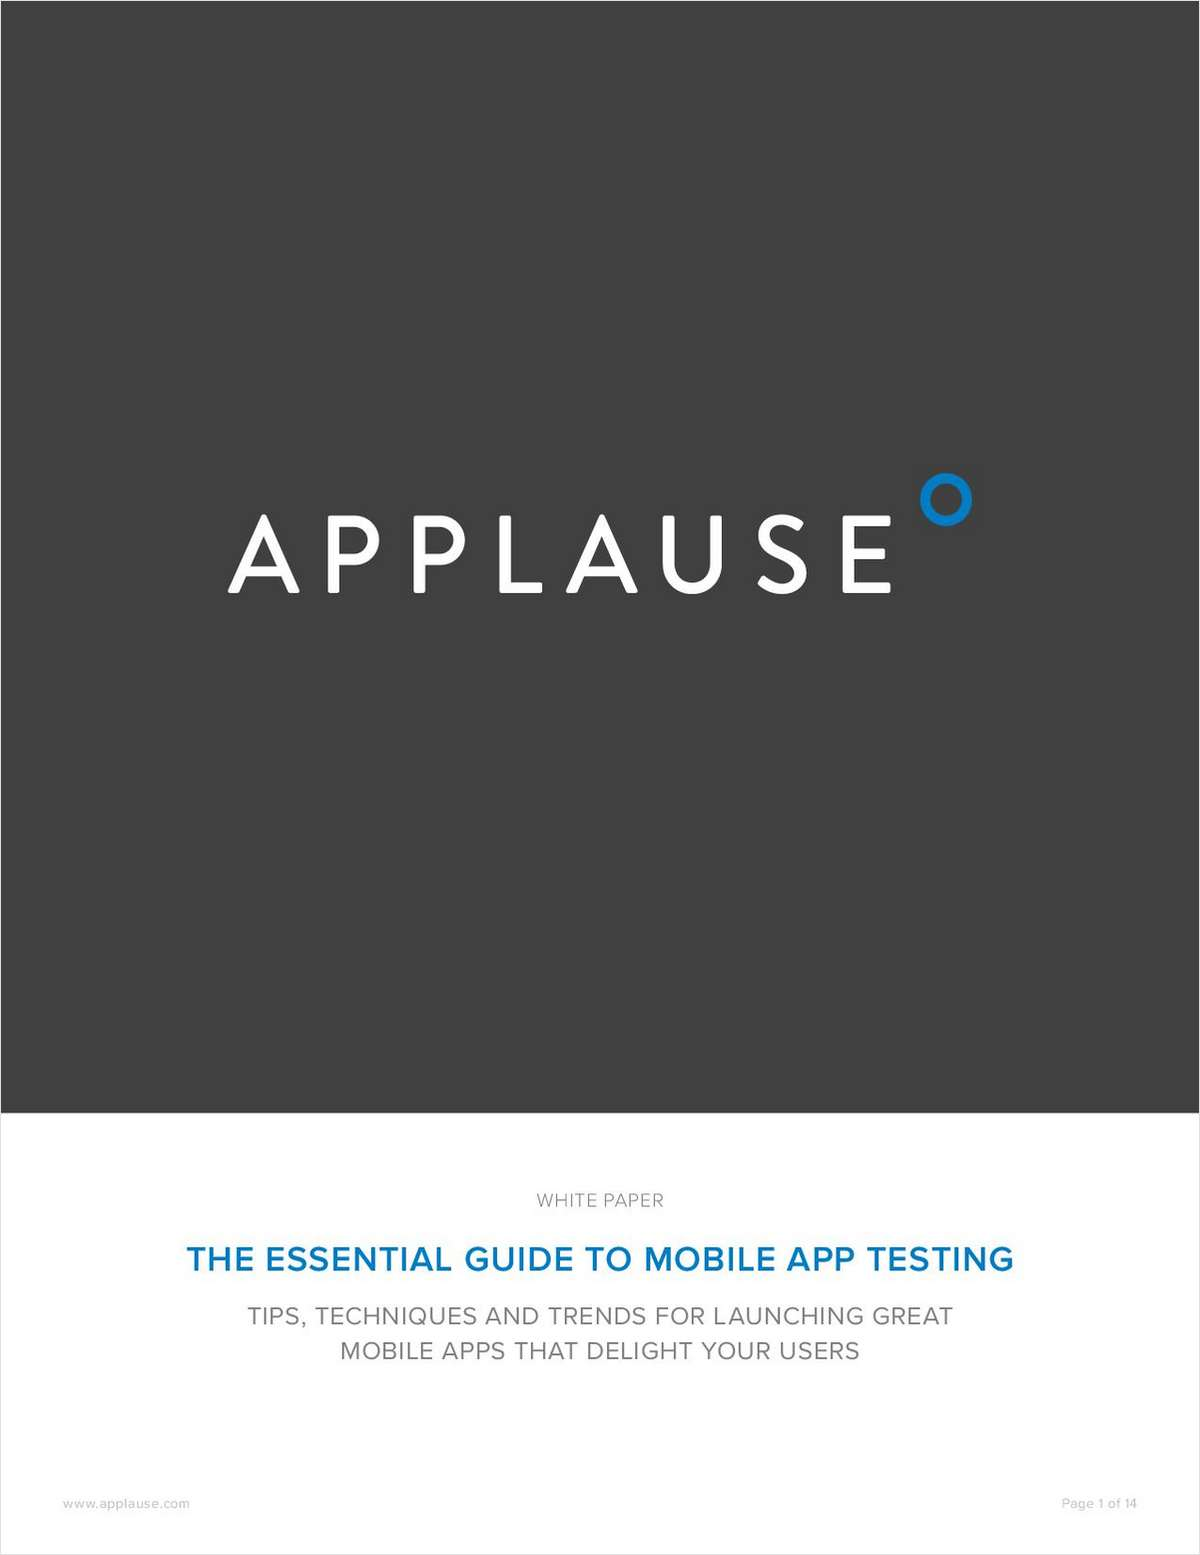 The Essential Guide to Mobile App Testing